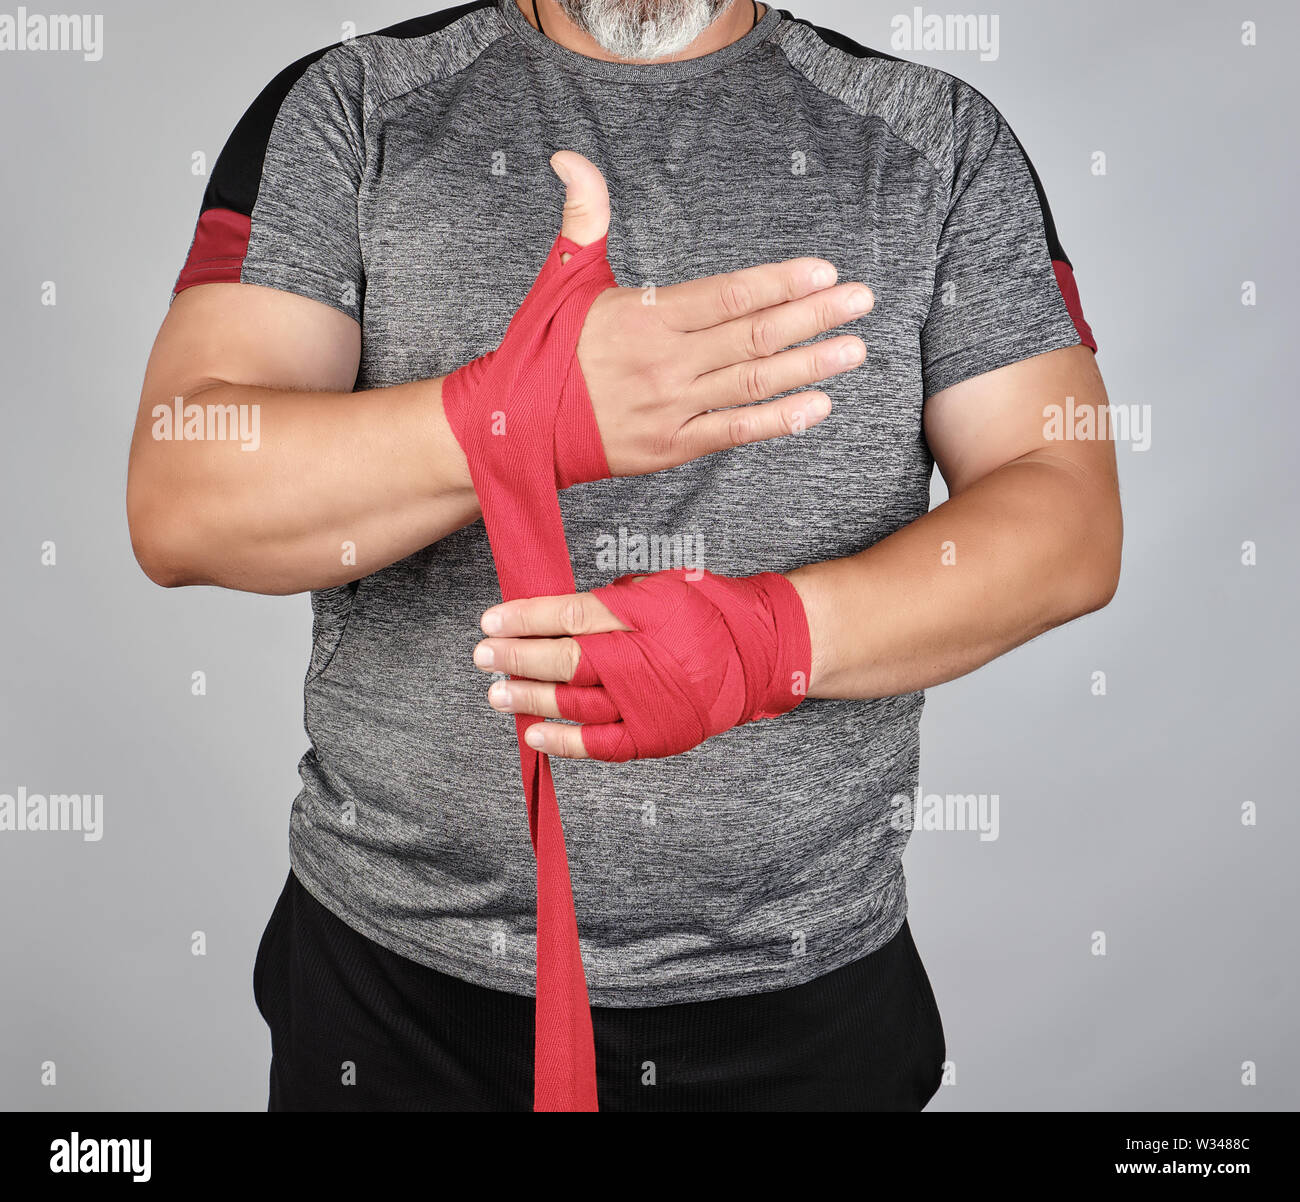 Athlete Stand In Gray Clothes And Wrap His Hands In Red Textile